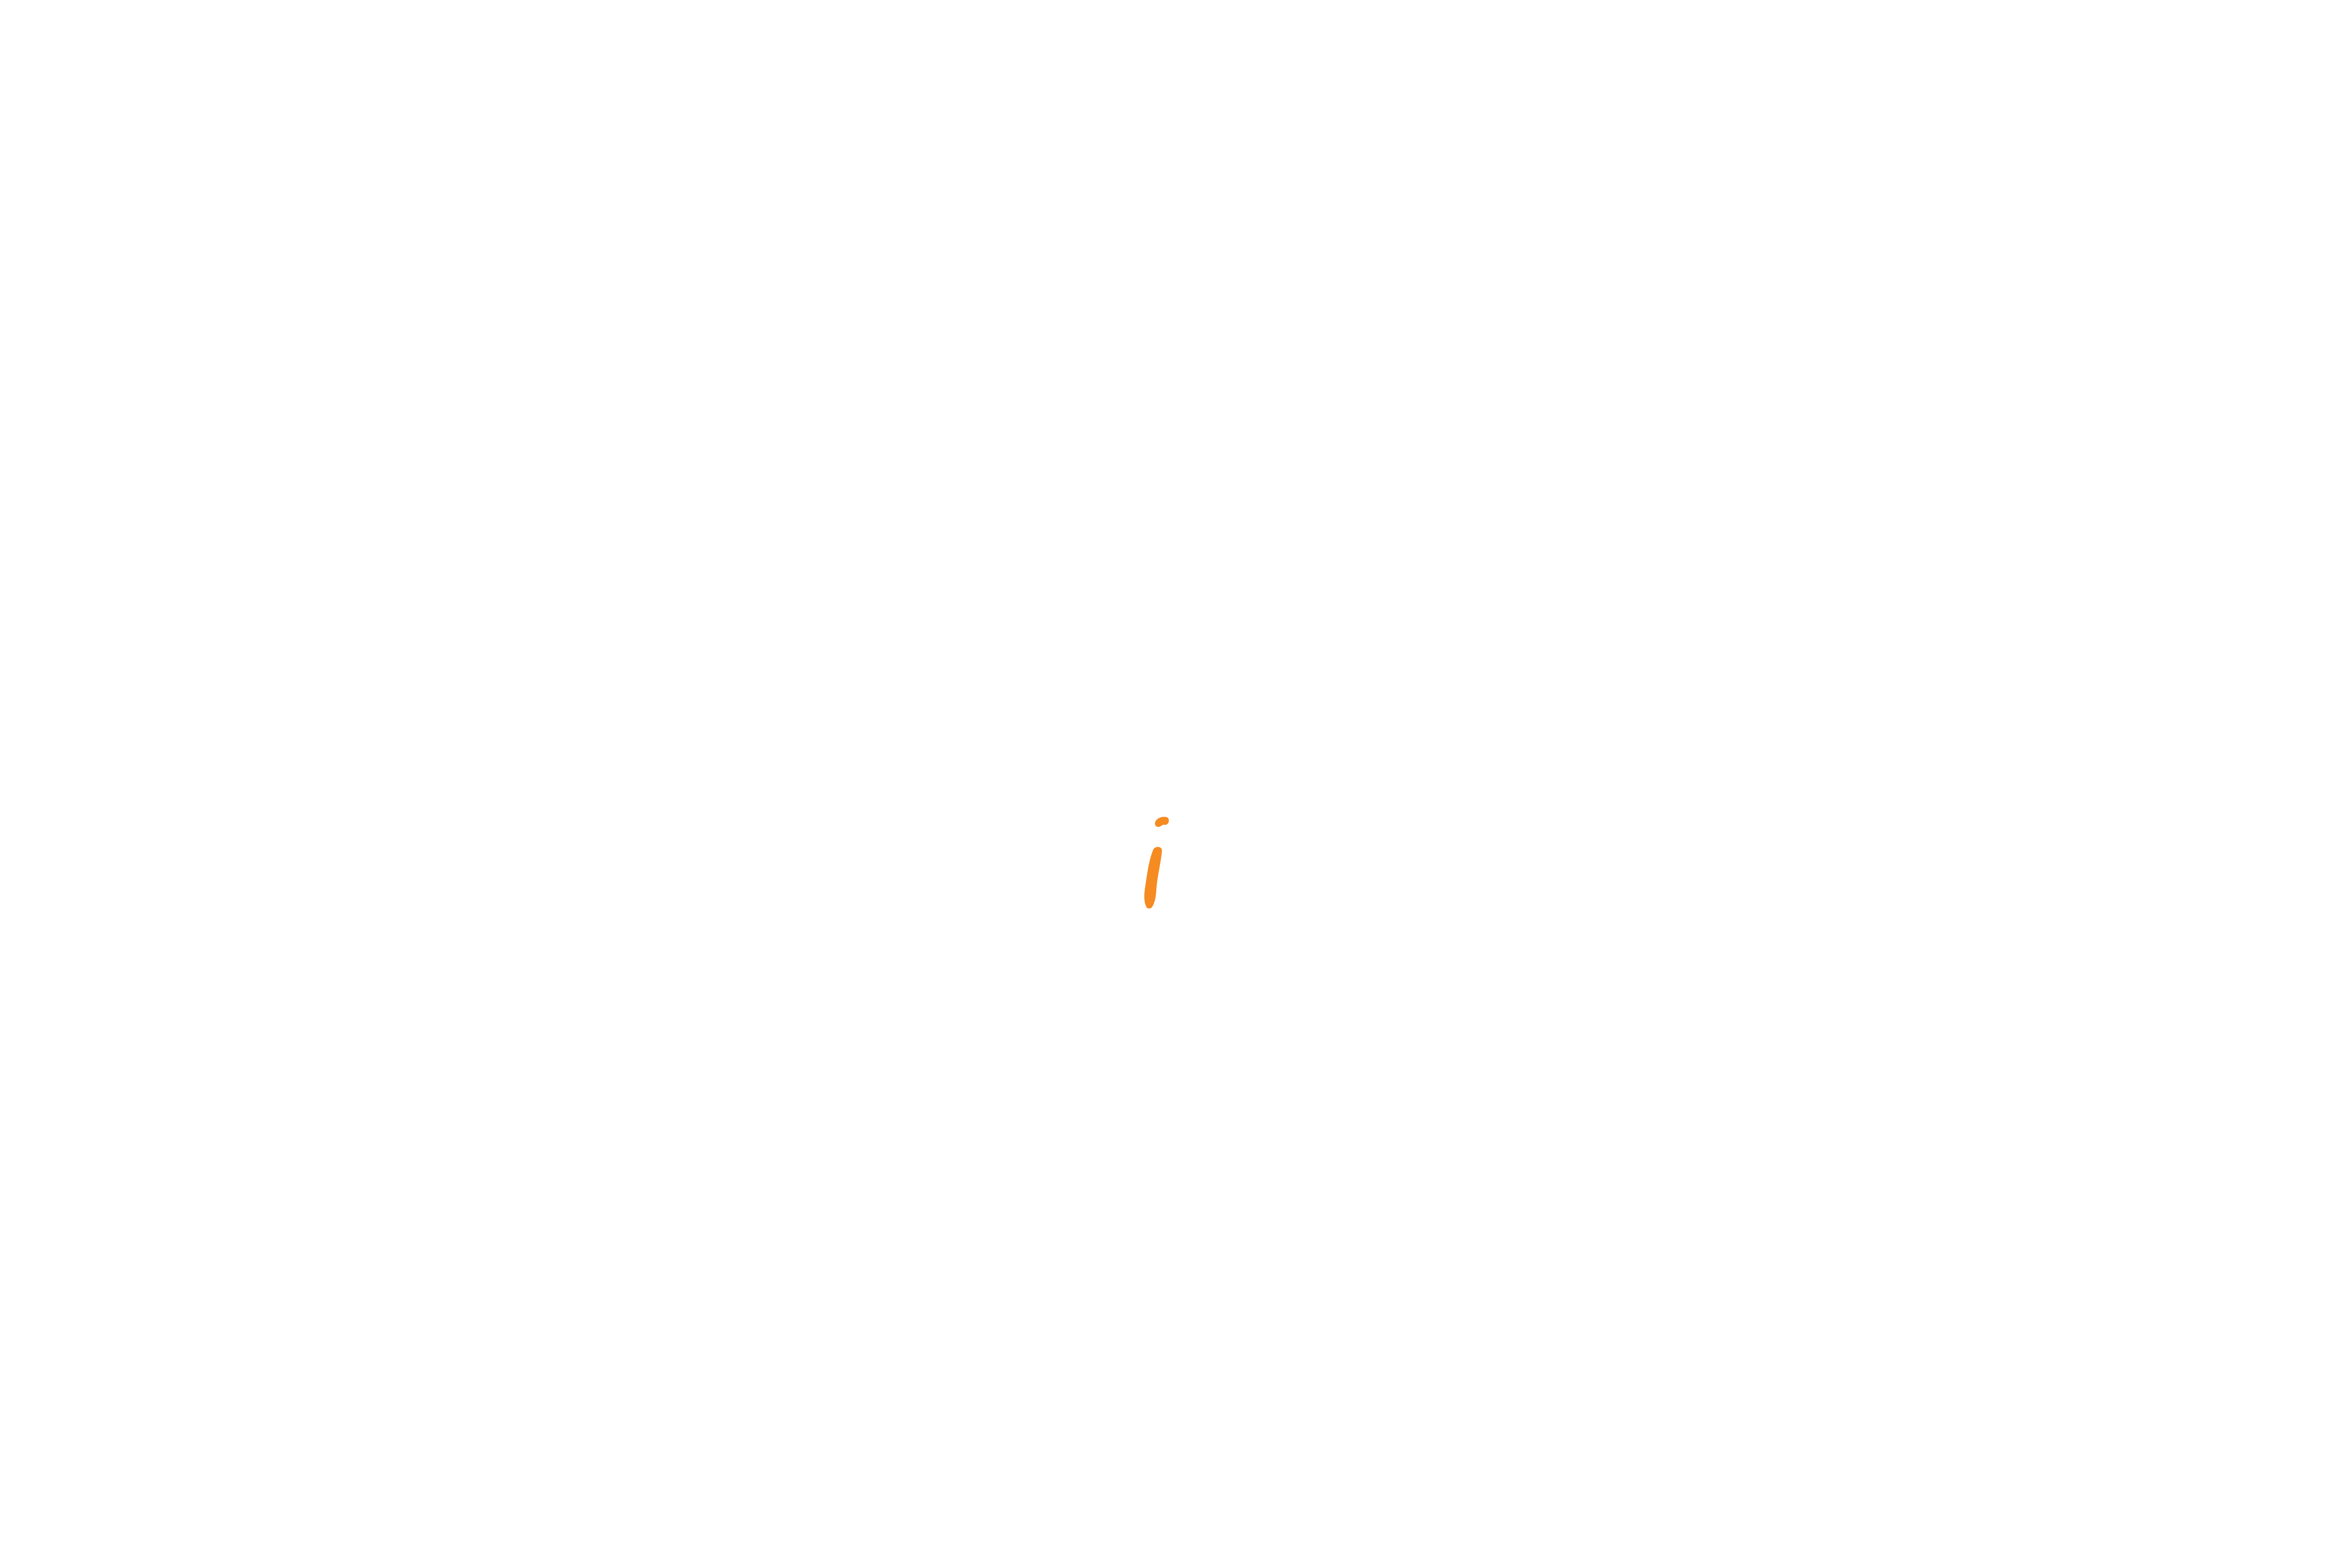 SATYAKIGHOSH PHOTOGRAPHY